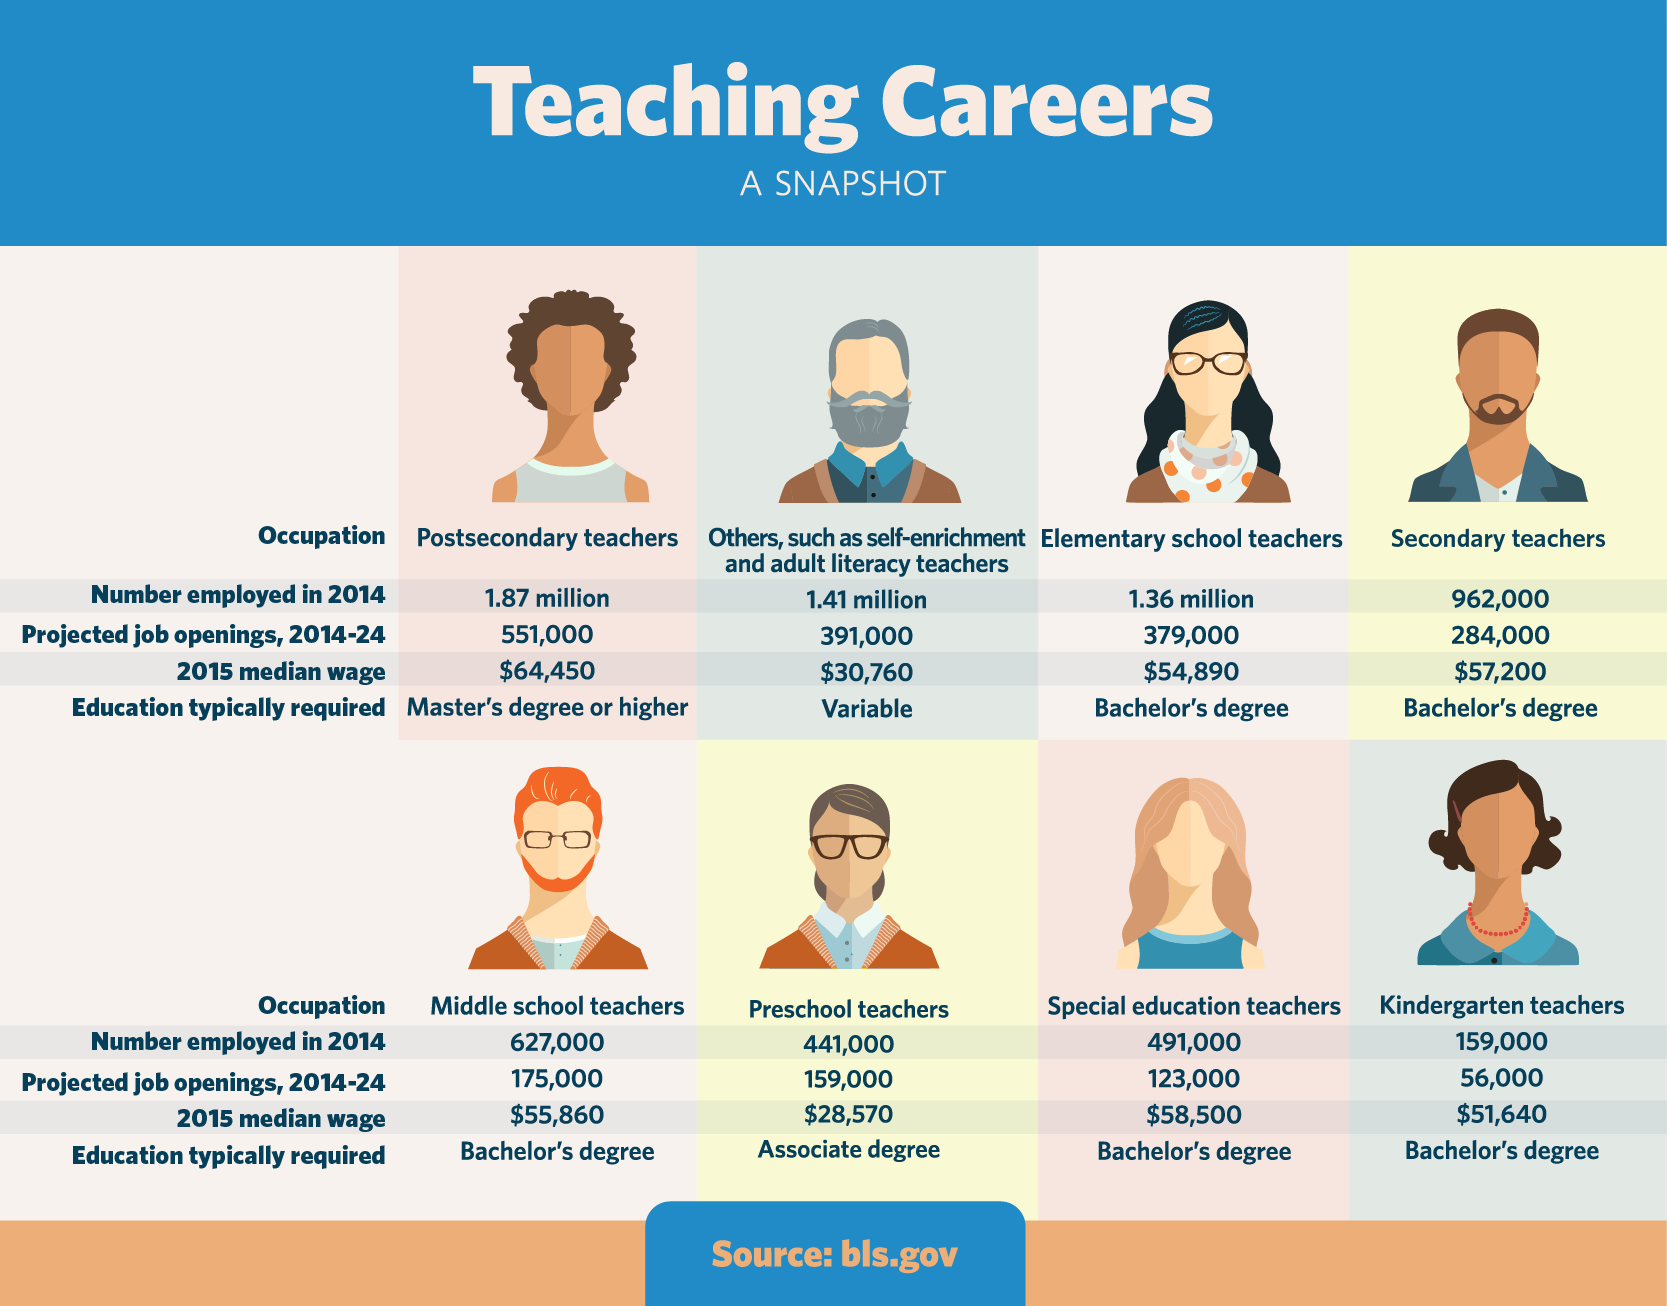 A graphic showing employment and wages for different types of teaching careers, including preschool, K-12, postsecondary, and special education.